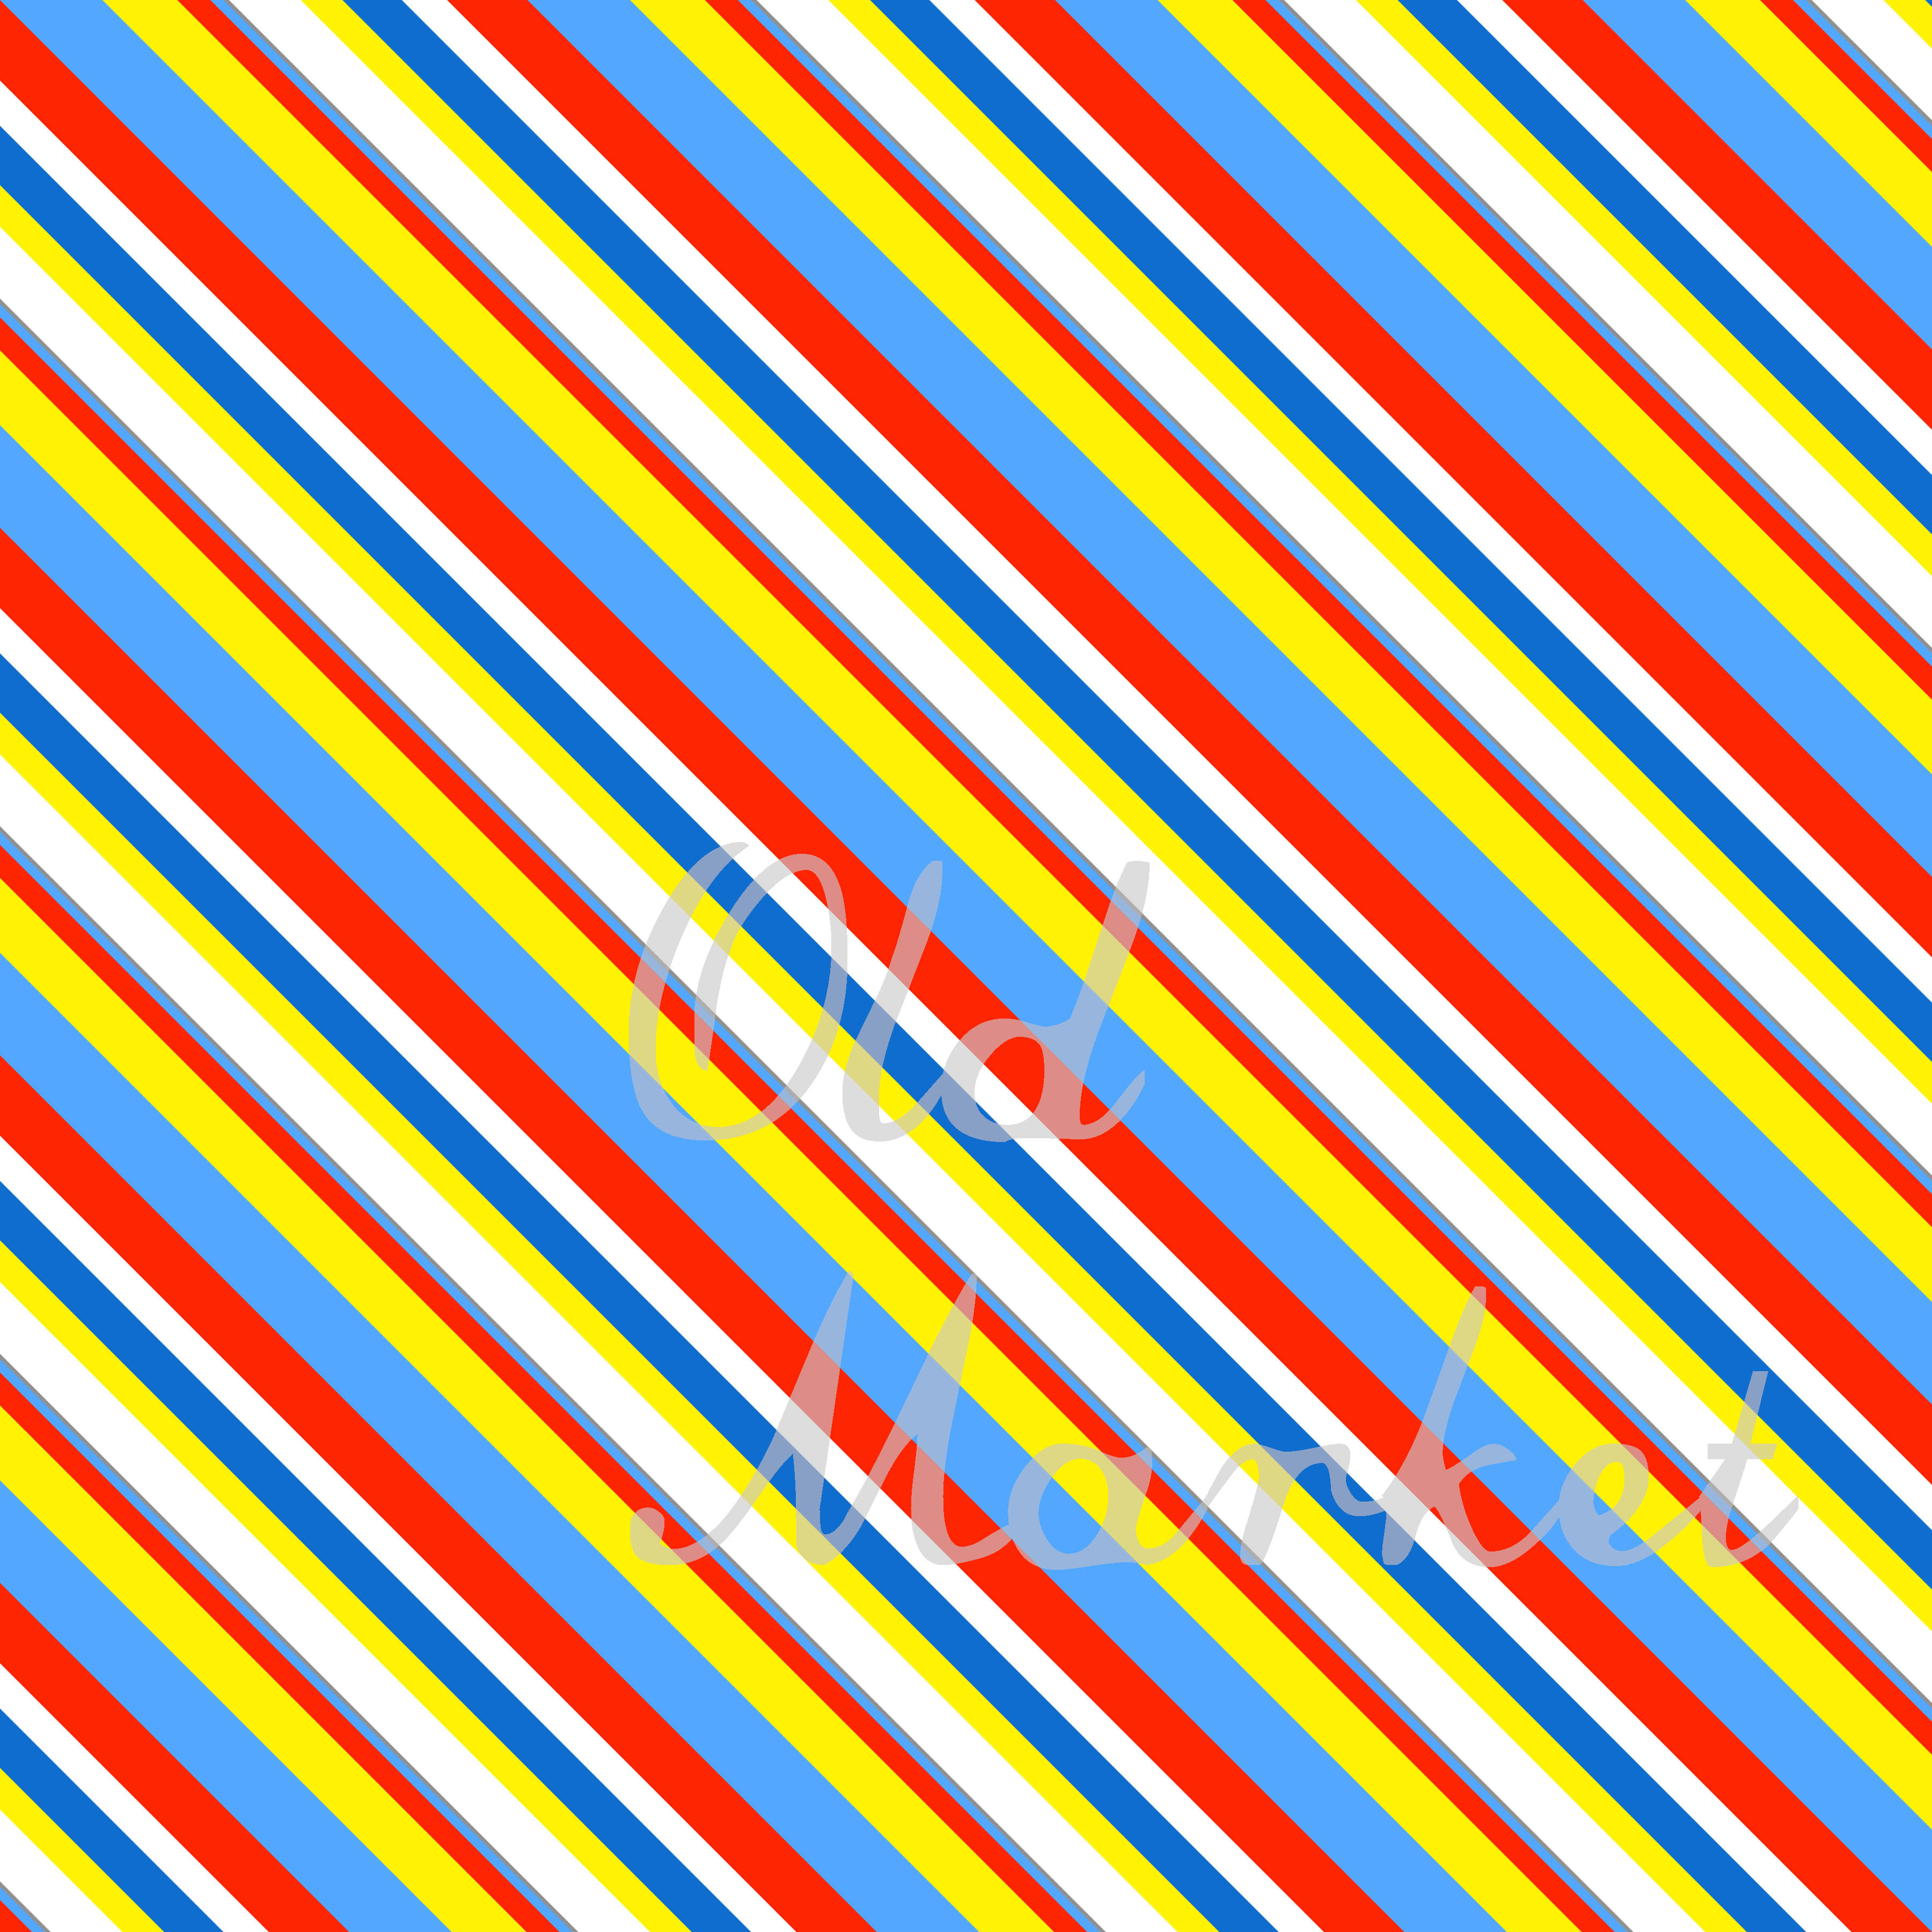 Primary Color Fun Digital Paper Graphic Backgrounds By oldmarketdesigns - Image 3